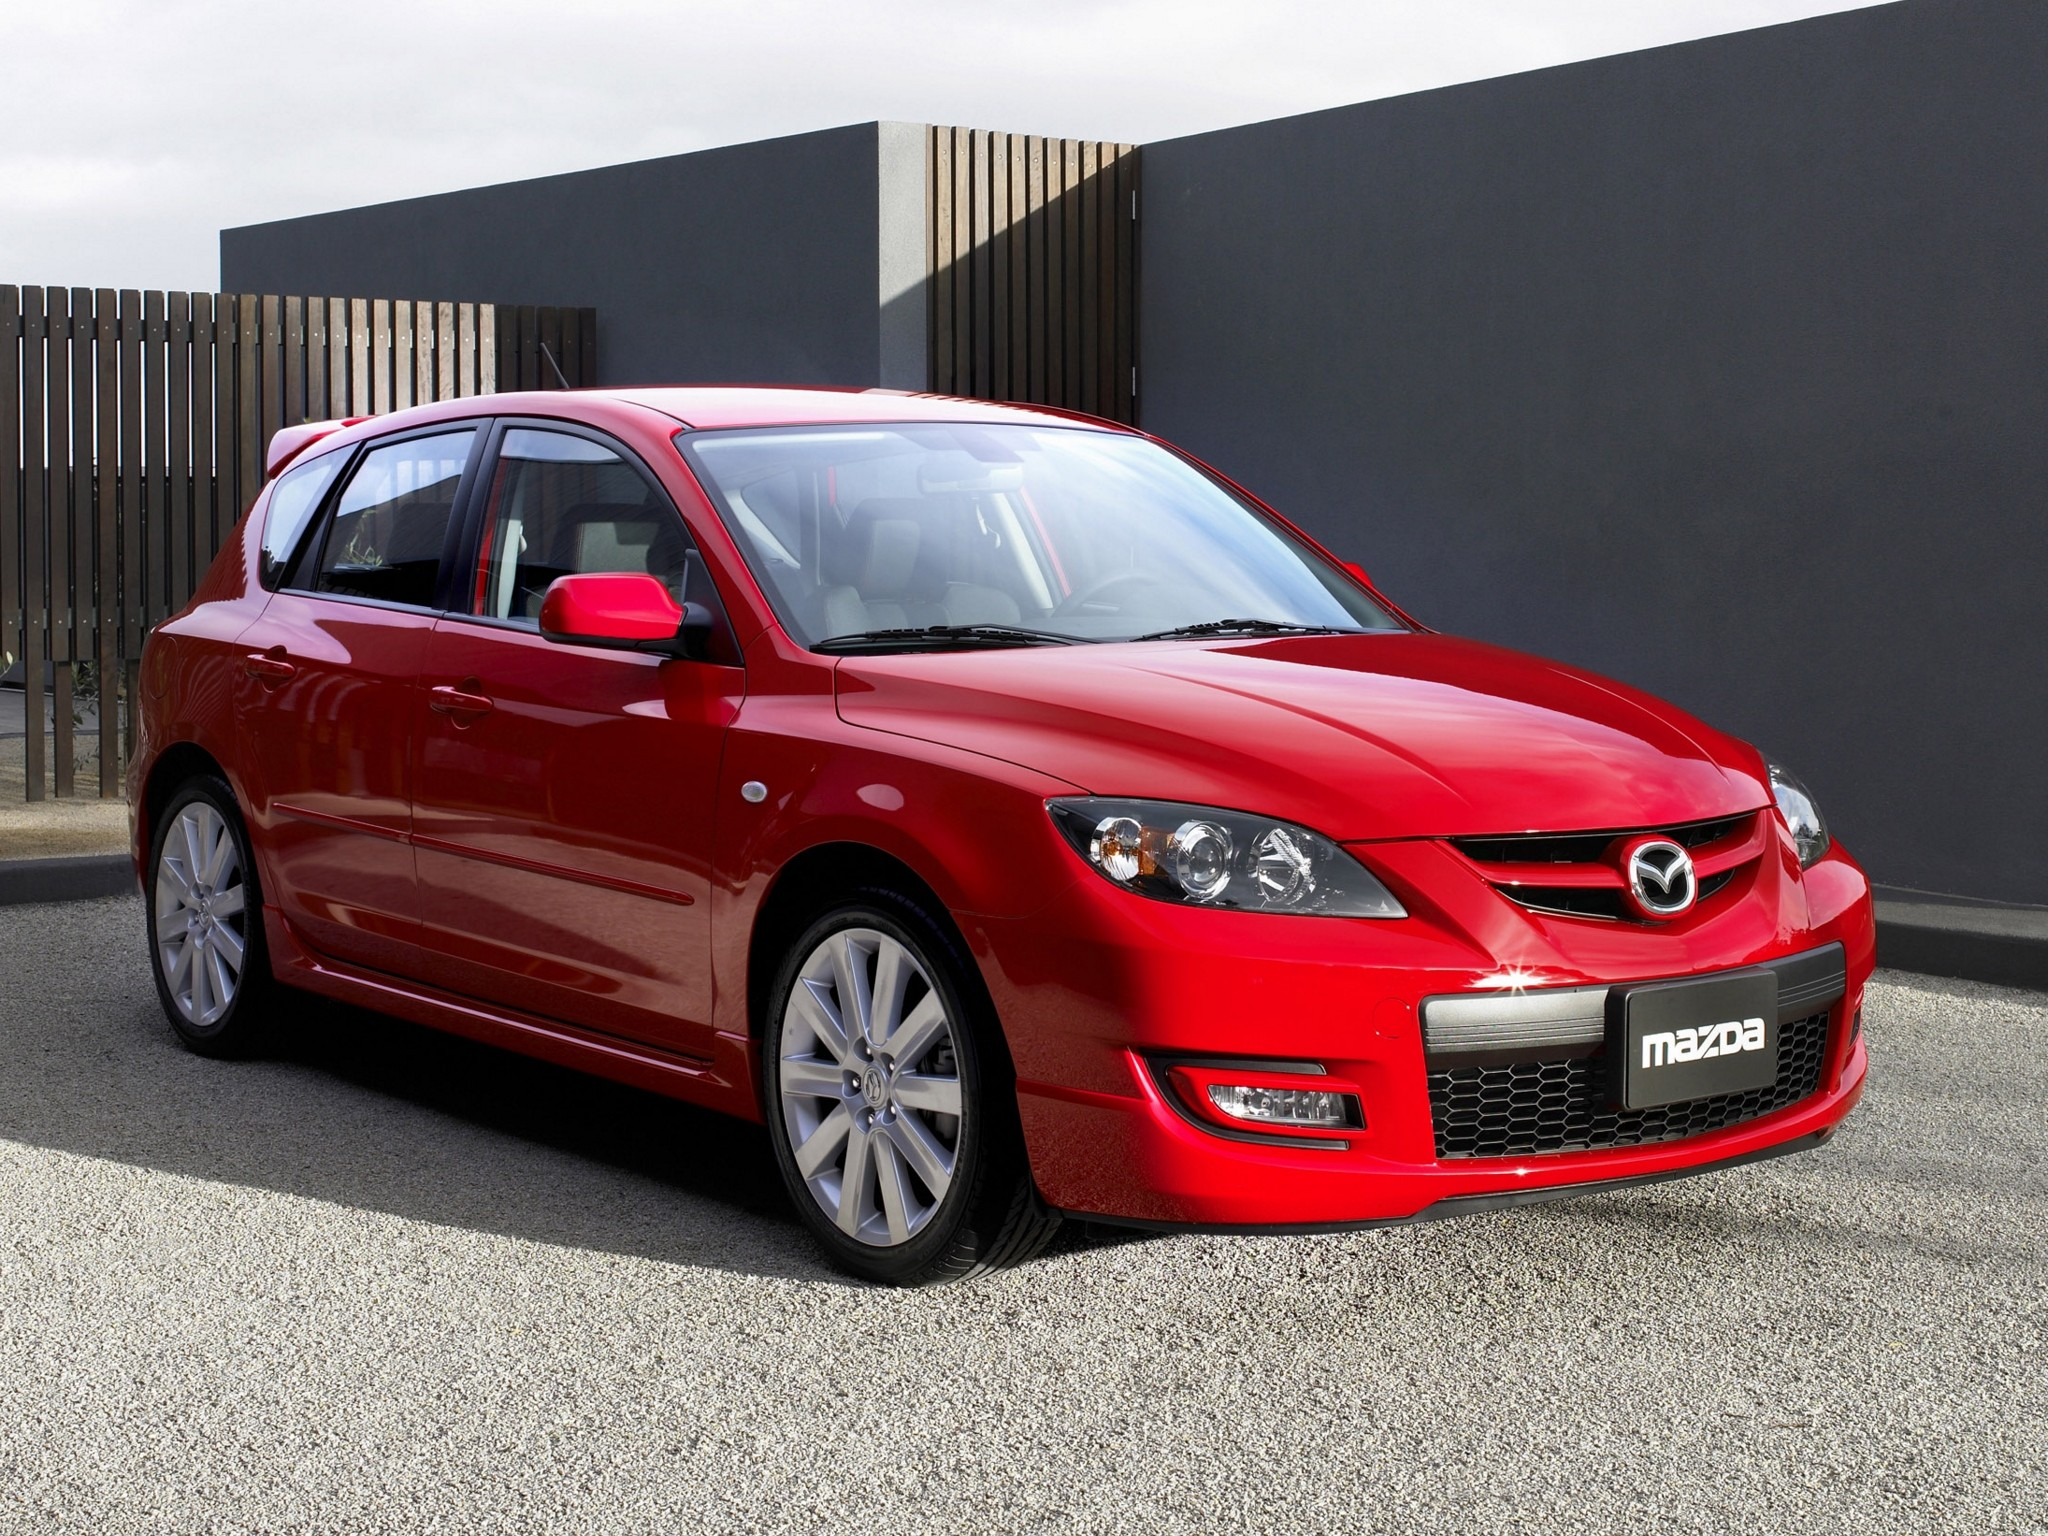 ... MAZDA 3 MPS / MAZDASPEED3 (2006 - 2009) ...